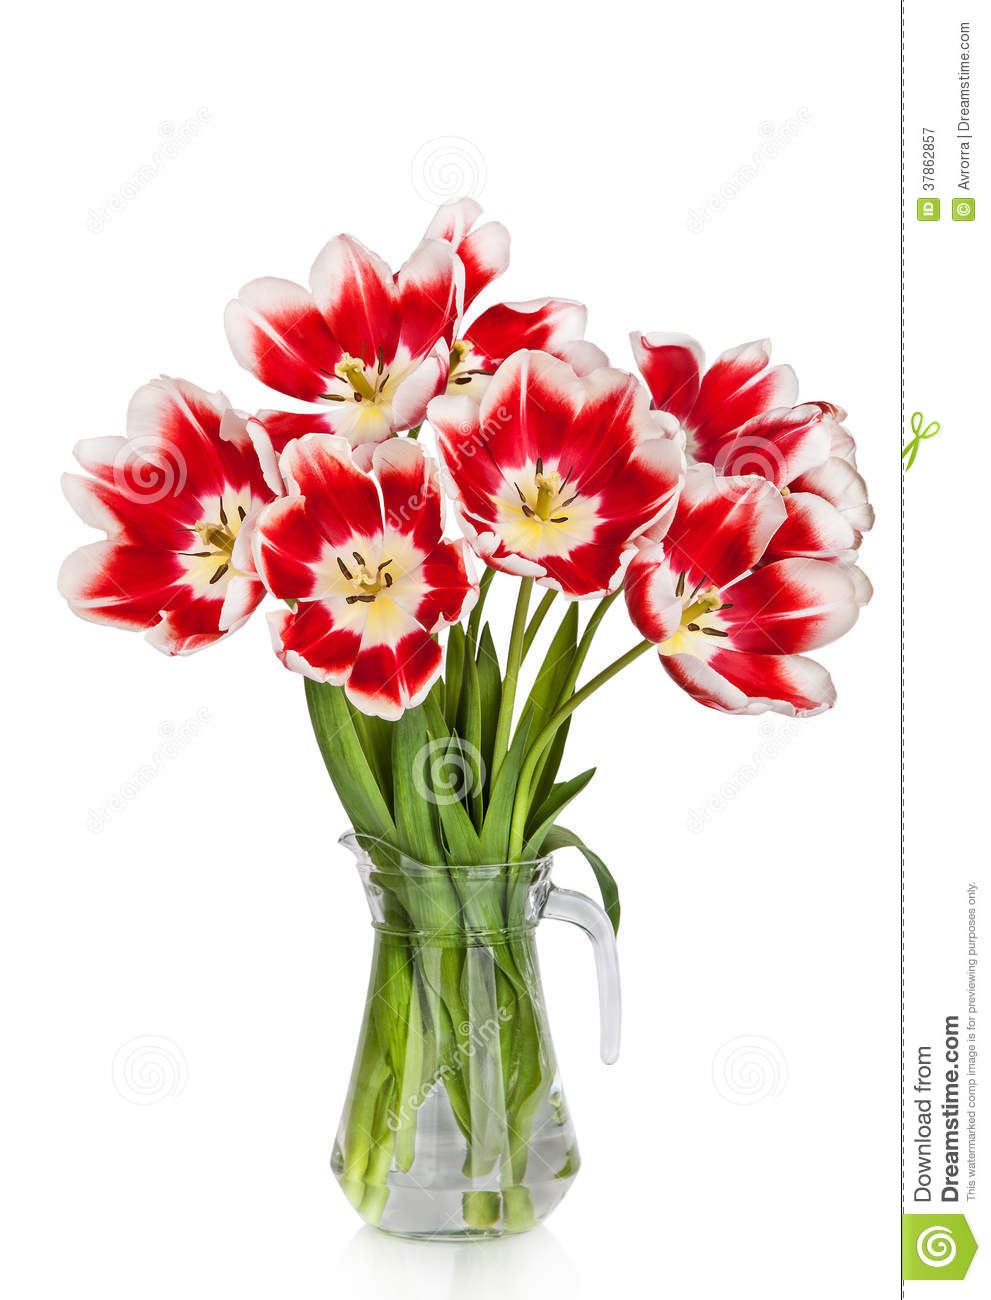 beautiful red tulips flowers bouquet in vase stock image image 37862857. Black Bedroom Furniture Sets. Home Design Ideas